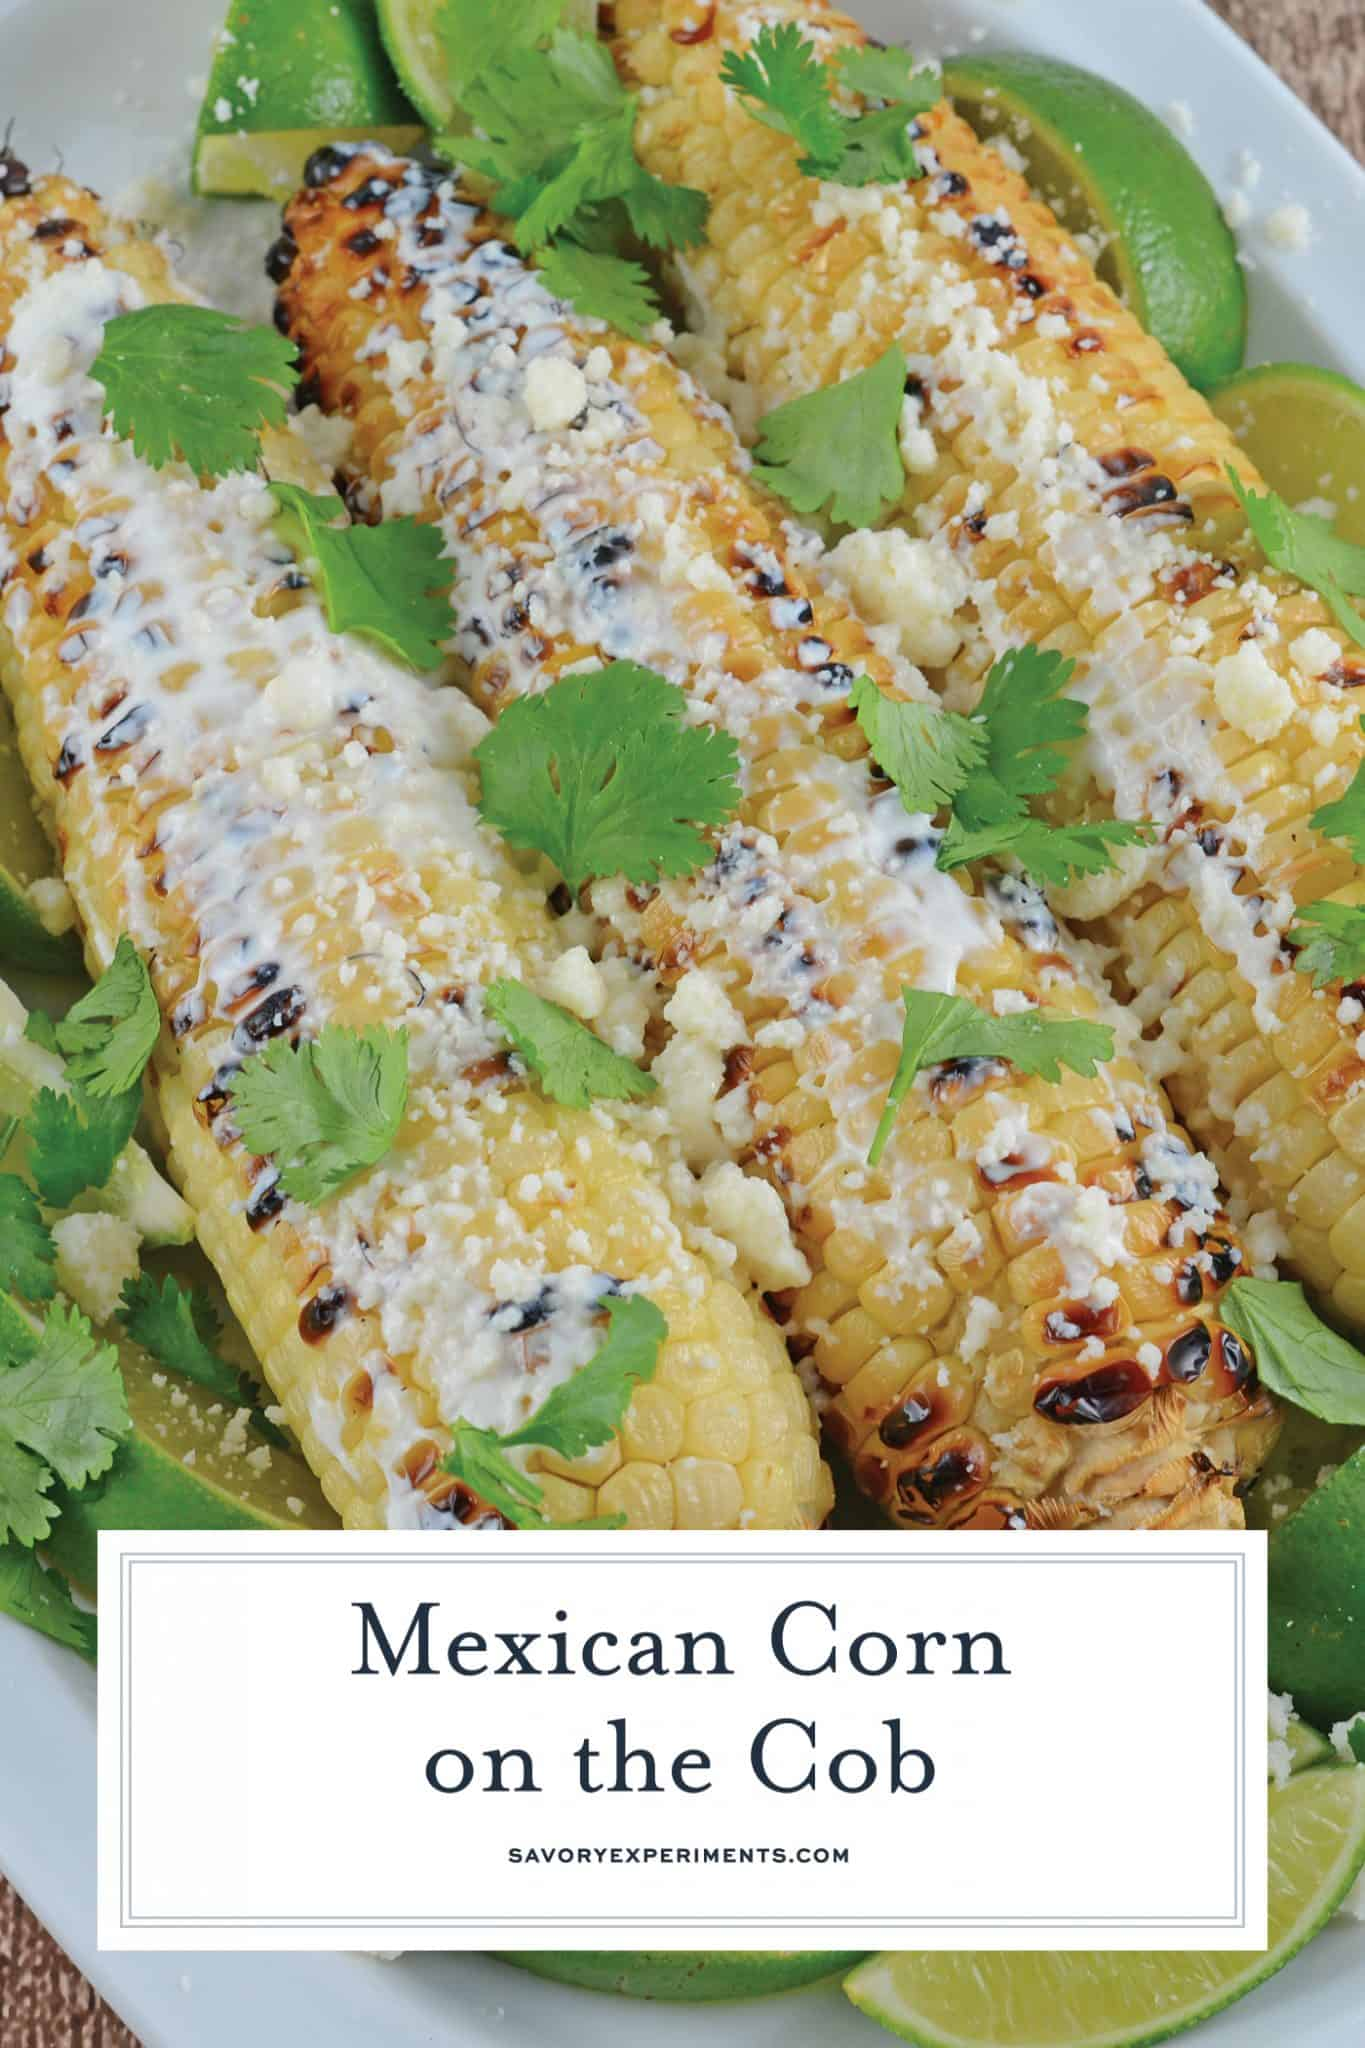 Mexican Corn on the Cob is one of the best, grilled corn recipes out there. Served as a side, it is a great way to spice up any BBQ.#elote #mexicancorn #cornonthecob www.savoryexperiments.com